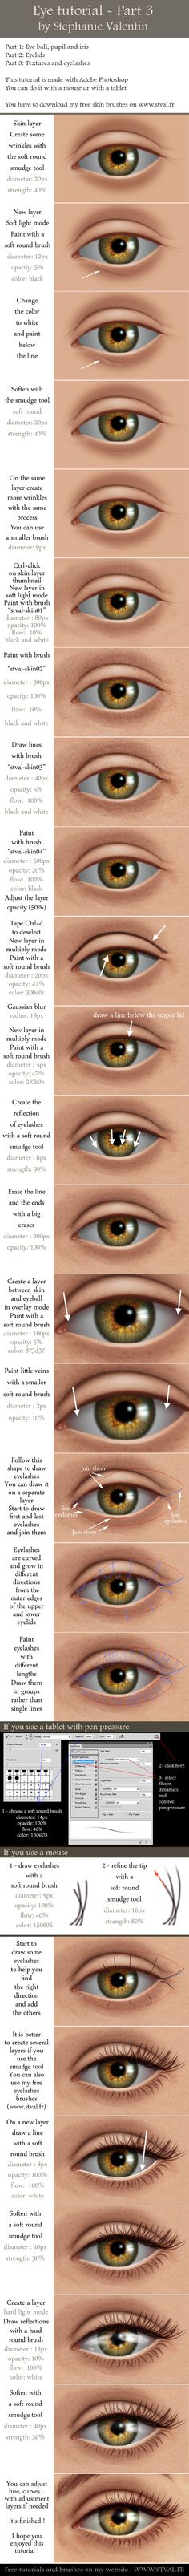 How to draw realistic EYE - Part 3/3 by StephanieVALENTIN.deviantart.com on @deviantART